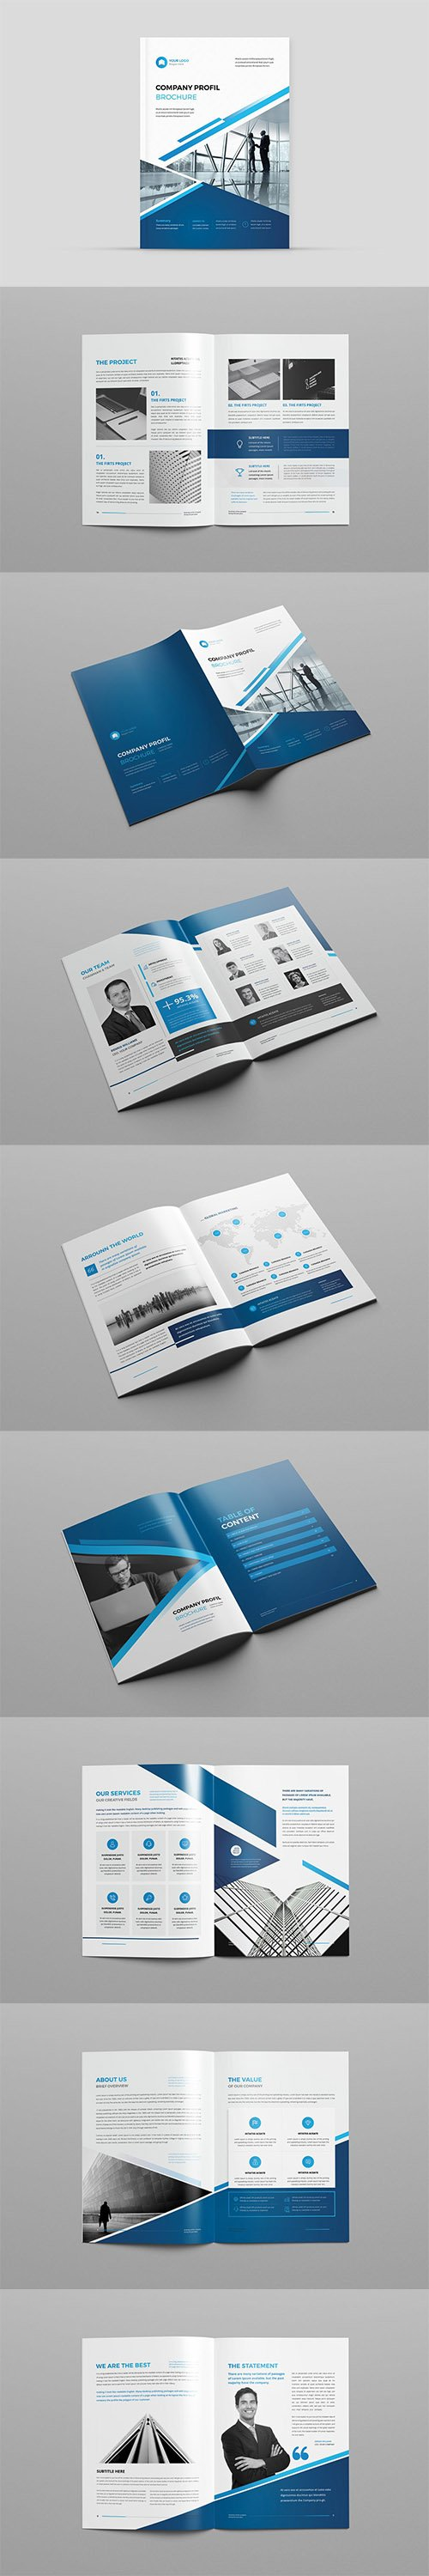 Corporate Brochure INDD